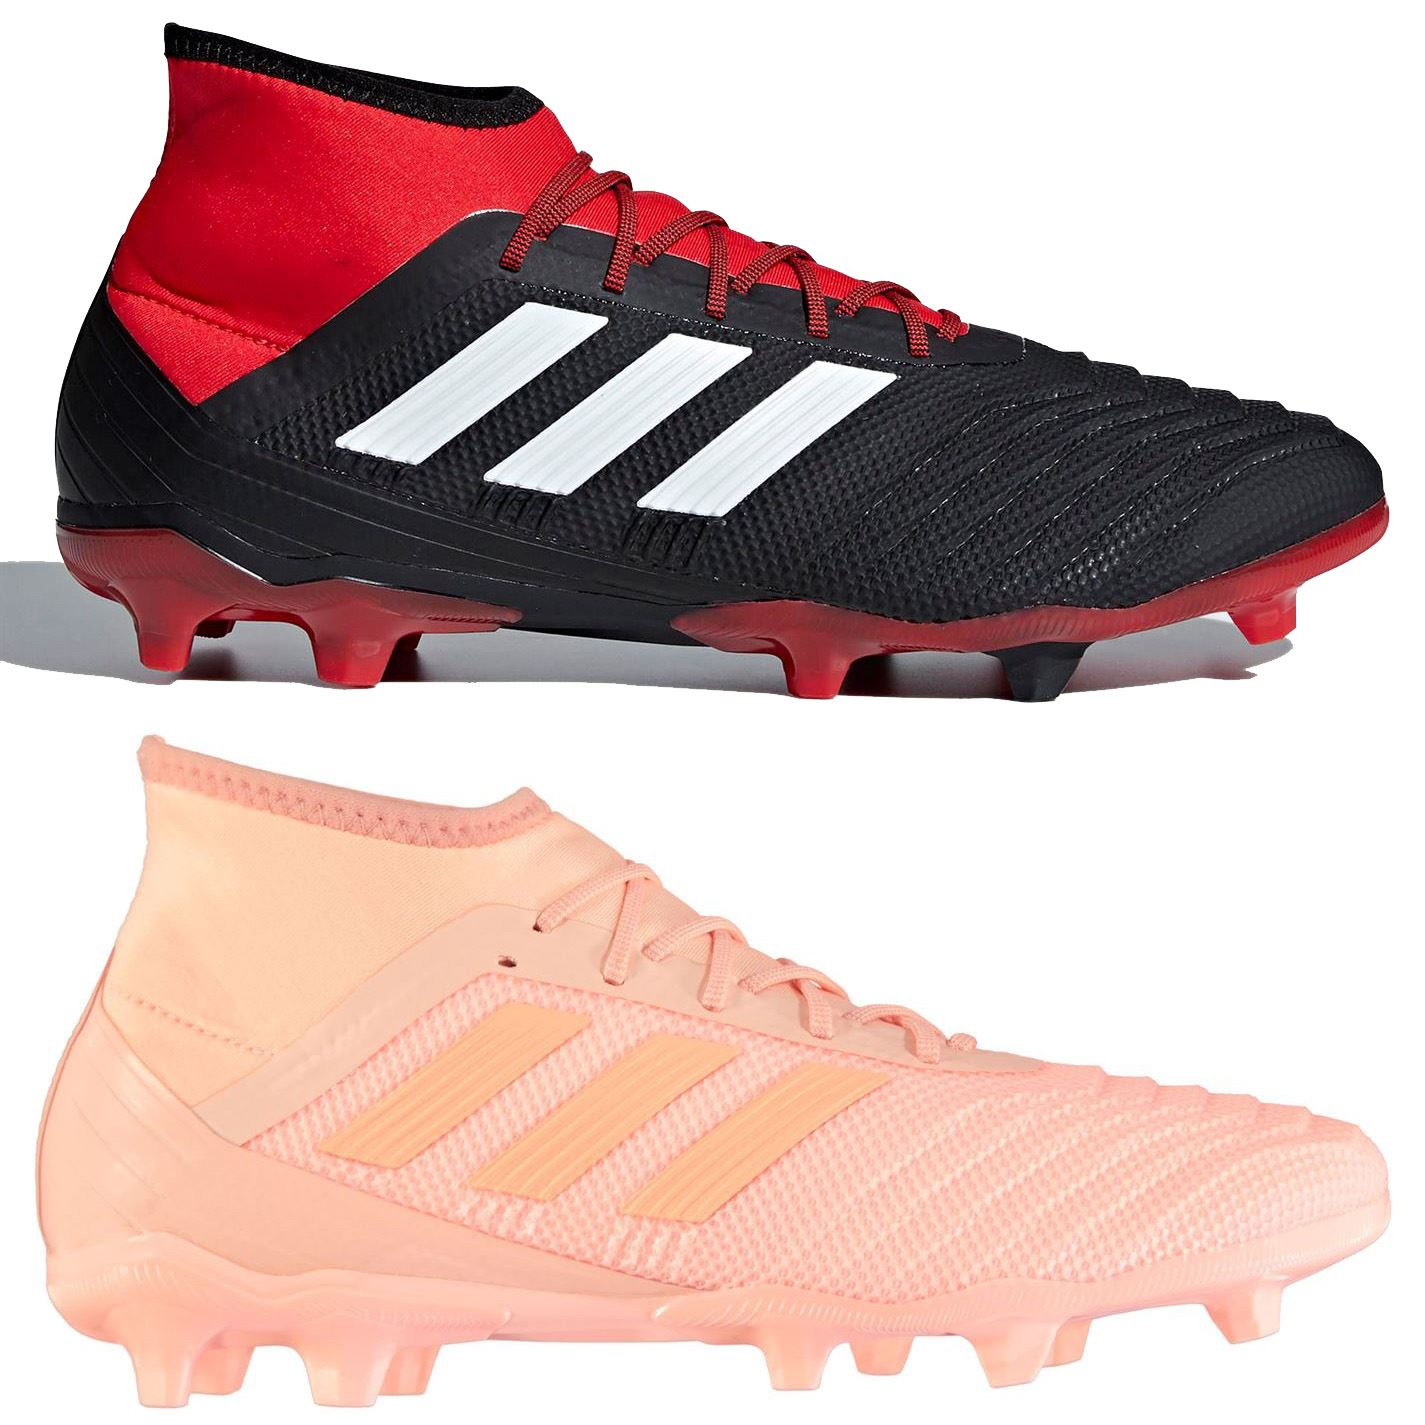 Details about adidas Predator 18.2 FG Firm Ground Football Boots Mens Soccer Shoes Cleats